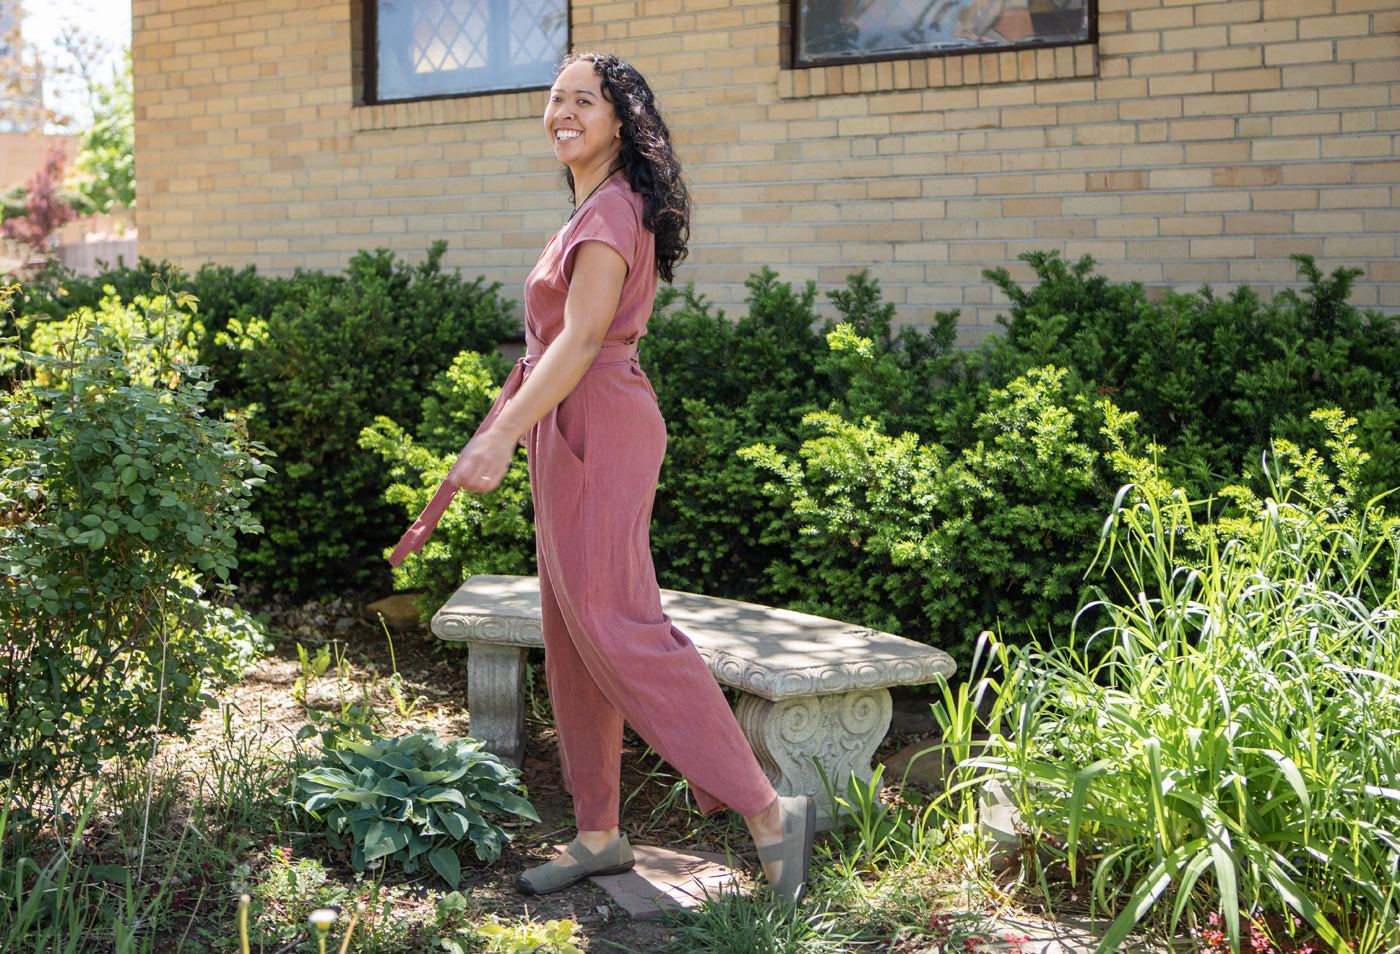 Woman posed in a garden area wearing a pink jumpsuit with a view from the side